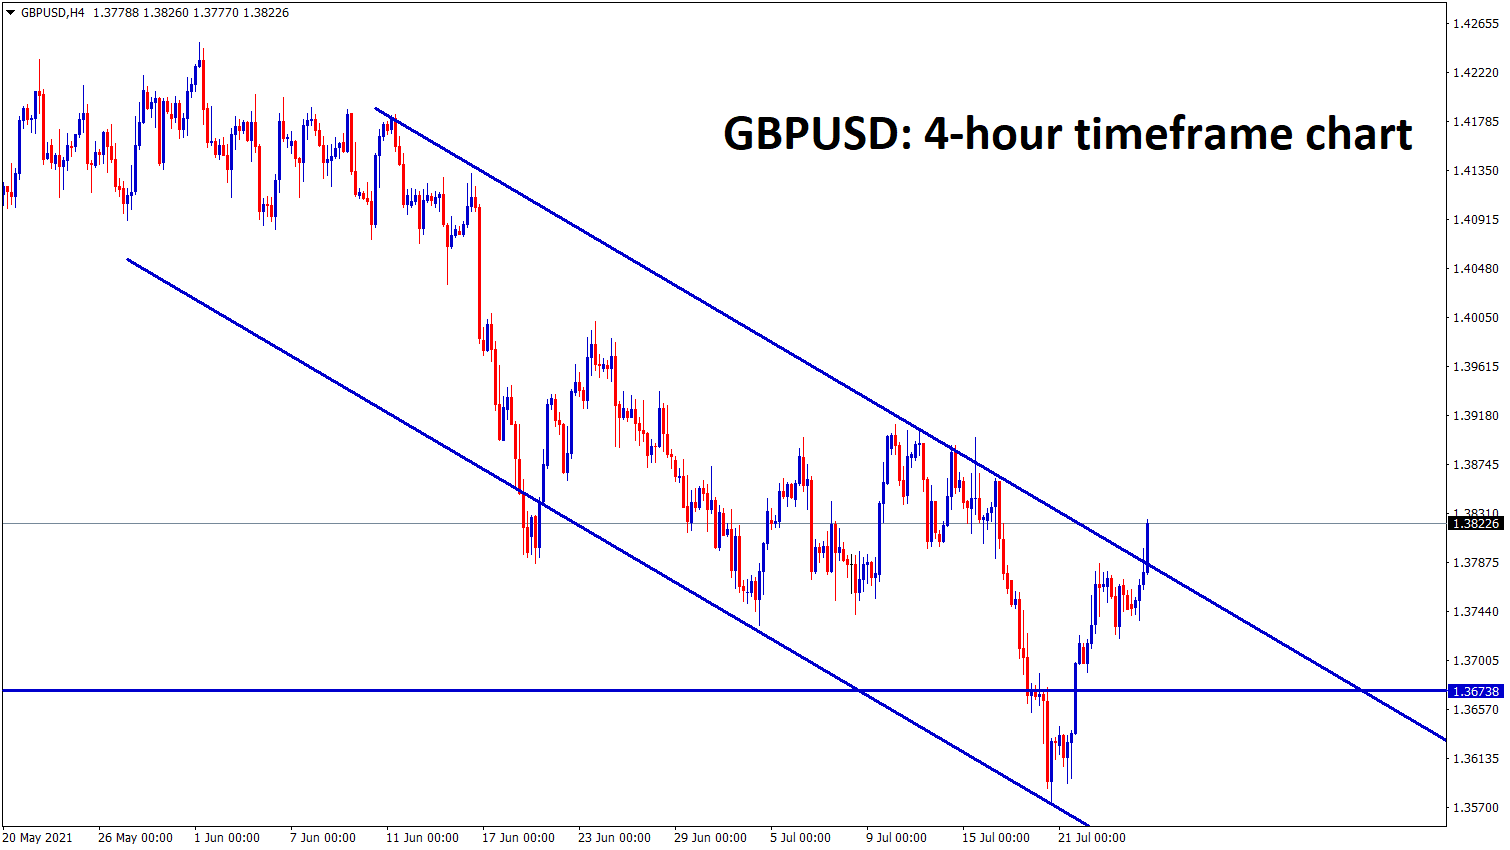 GBPUSD has bounced back from the major higher timeframe support 1.36 now its trying to break the top of the minor downtrend line